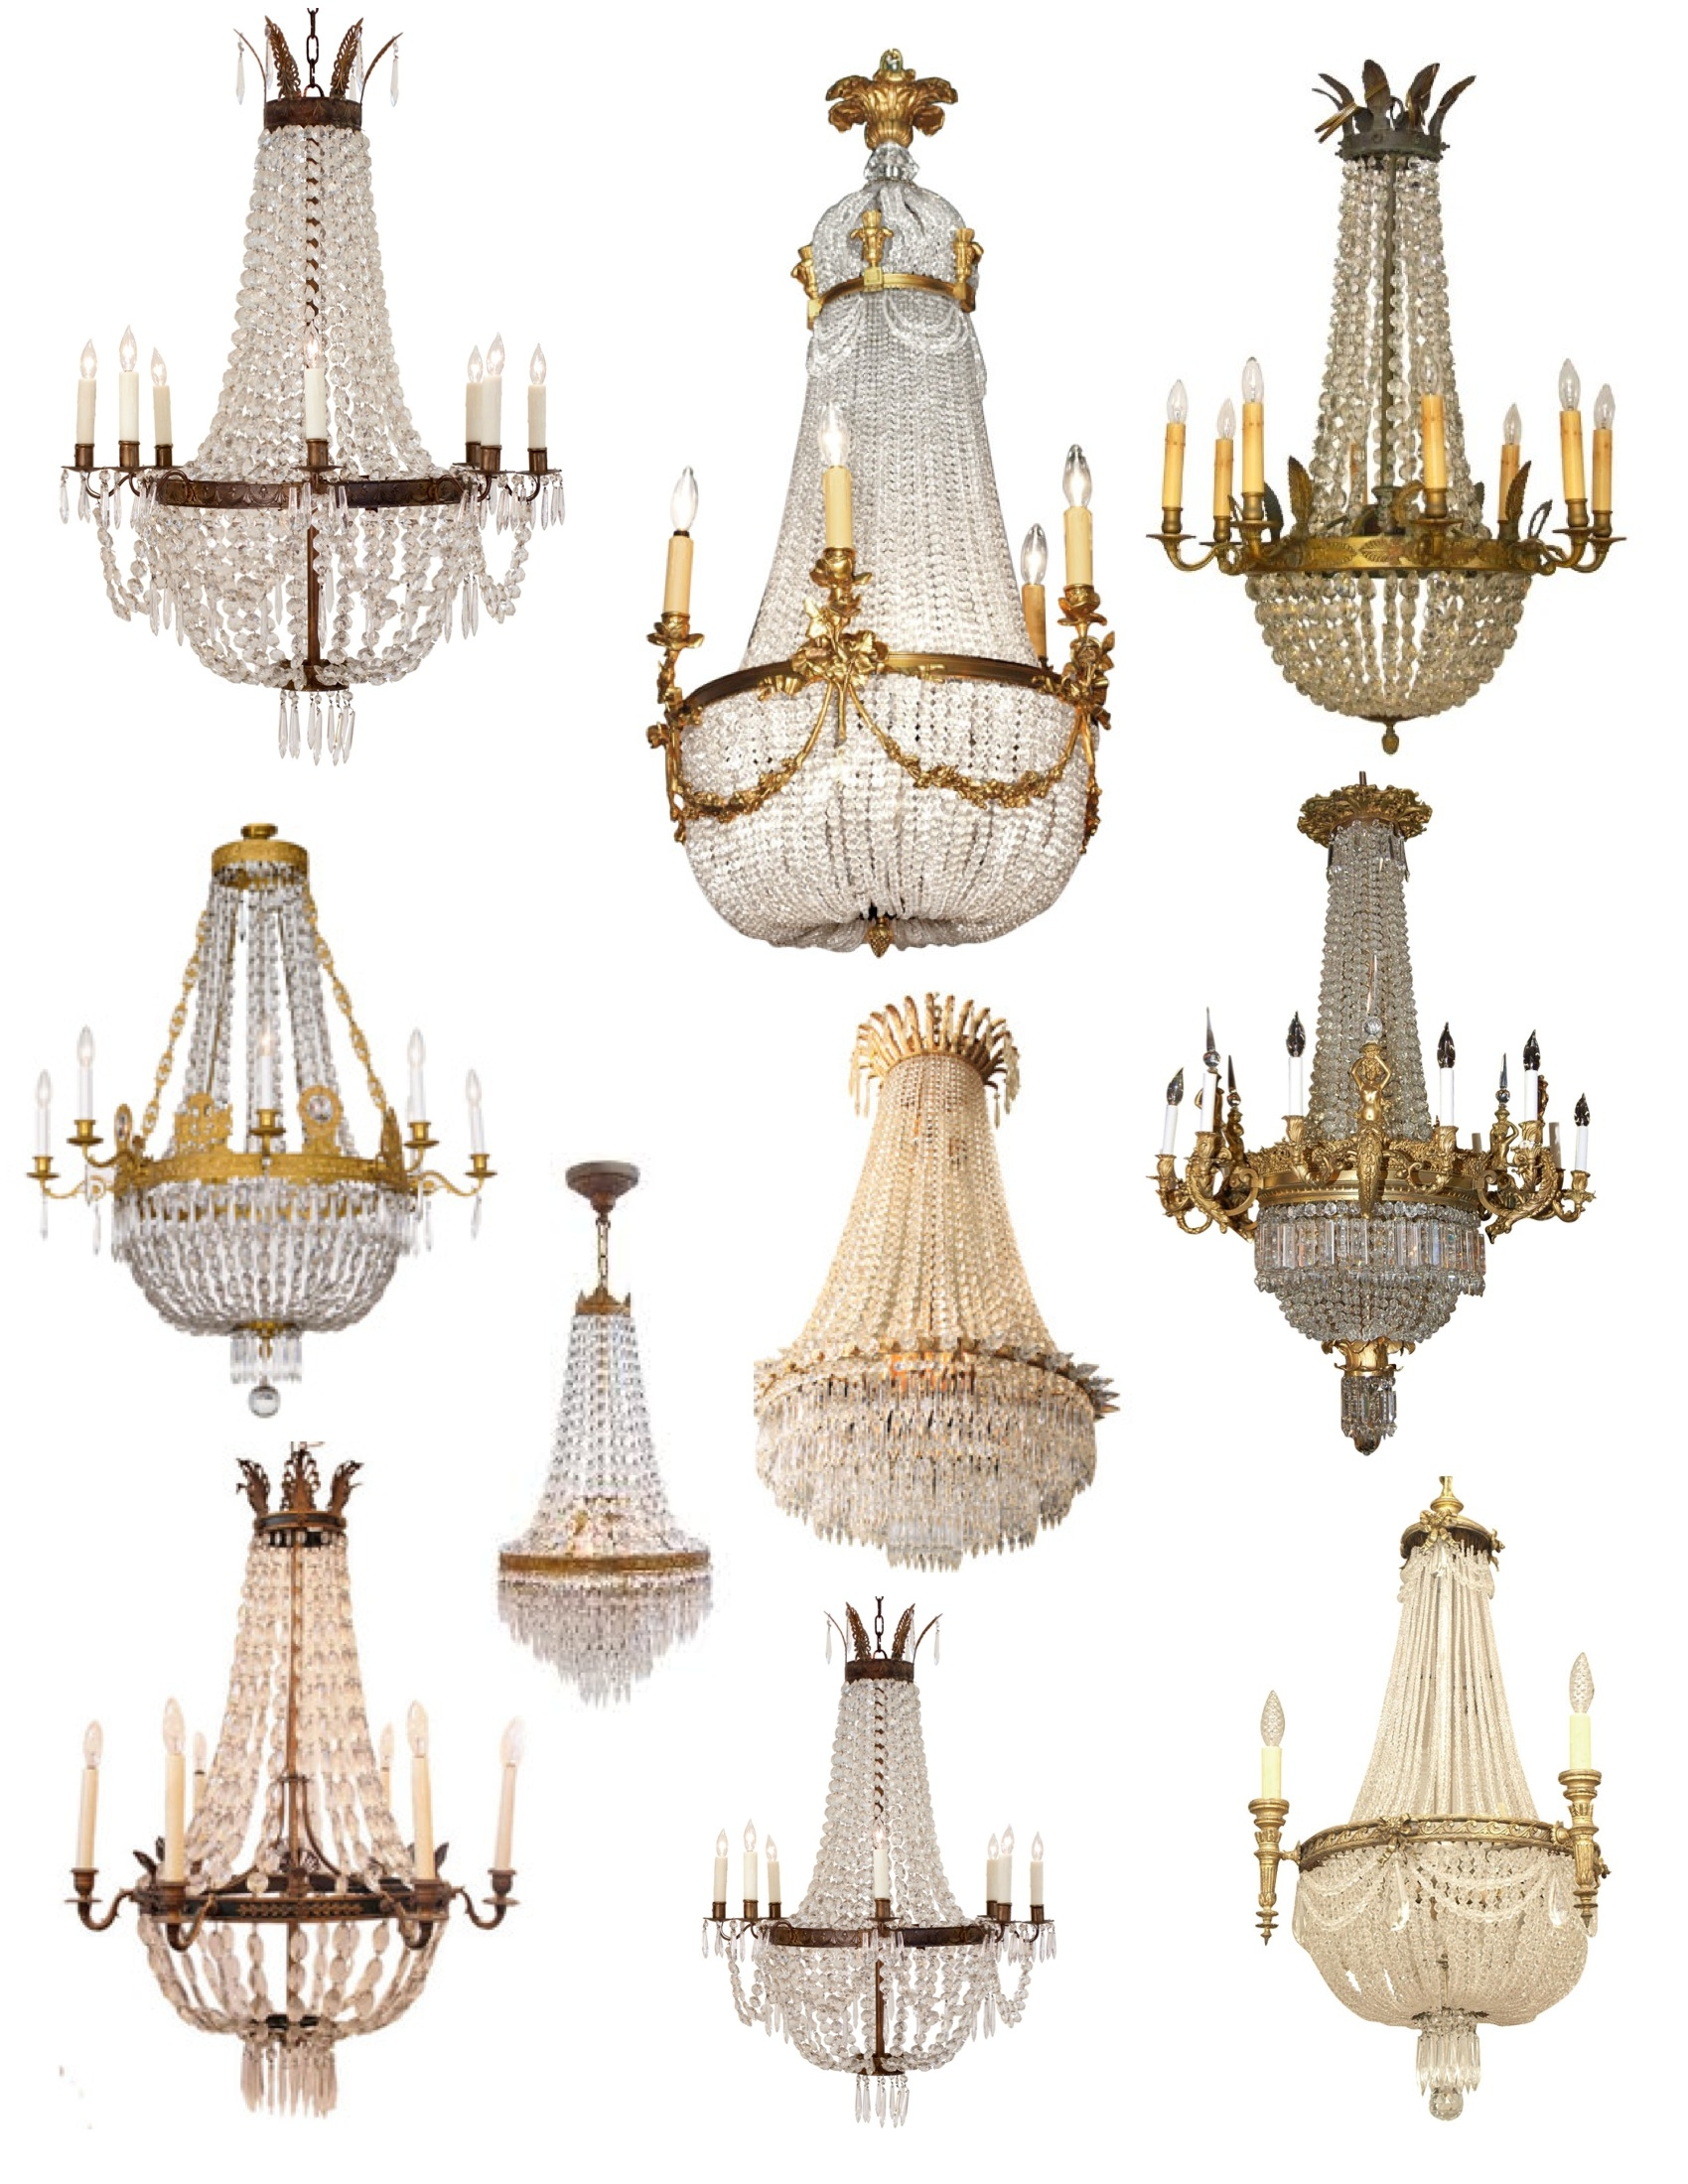 Crowned Magnificence The French Empire Crystal Chandelier Lamp Regarding French Style Chandeliers (Image 5 of 15)